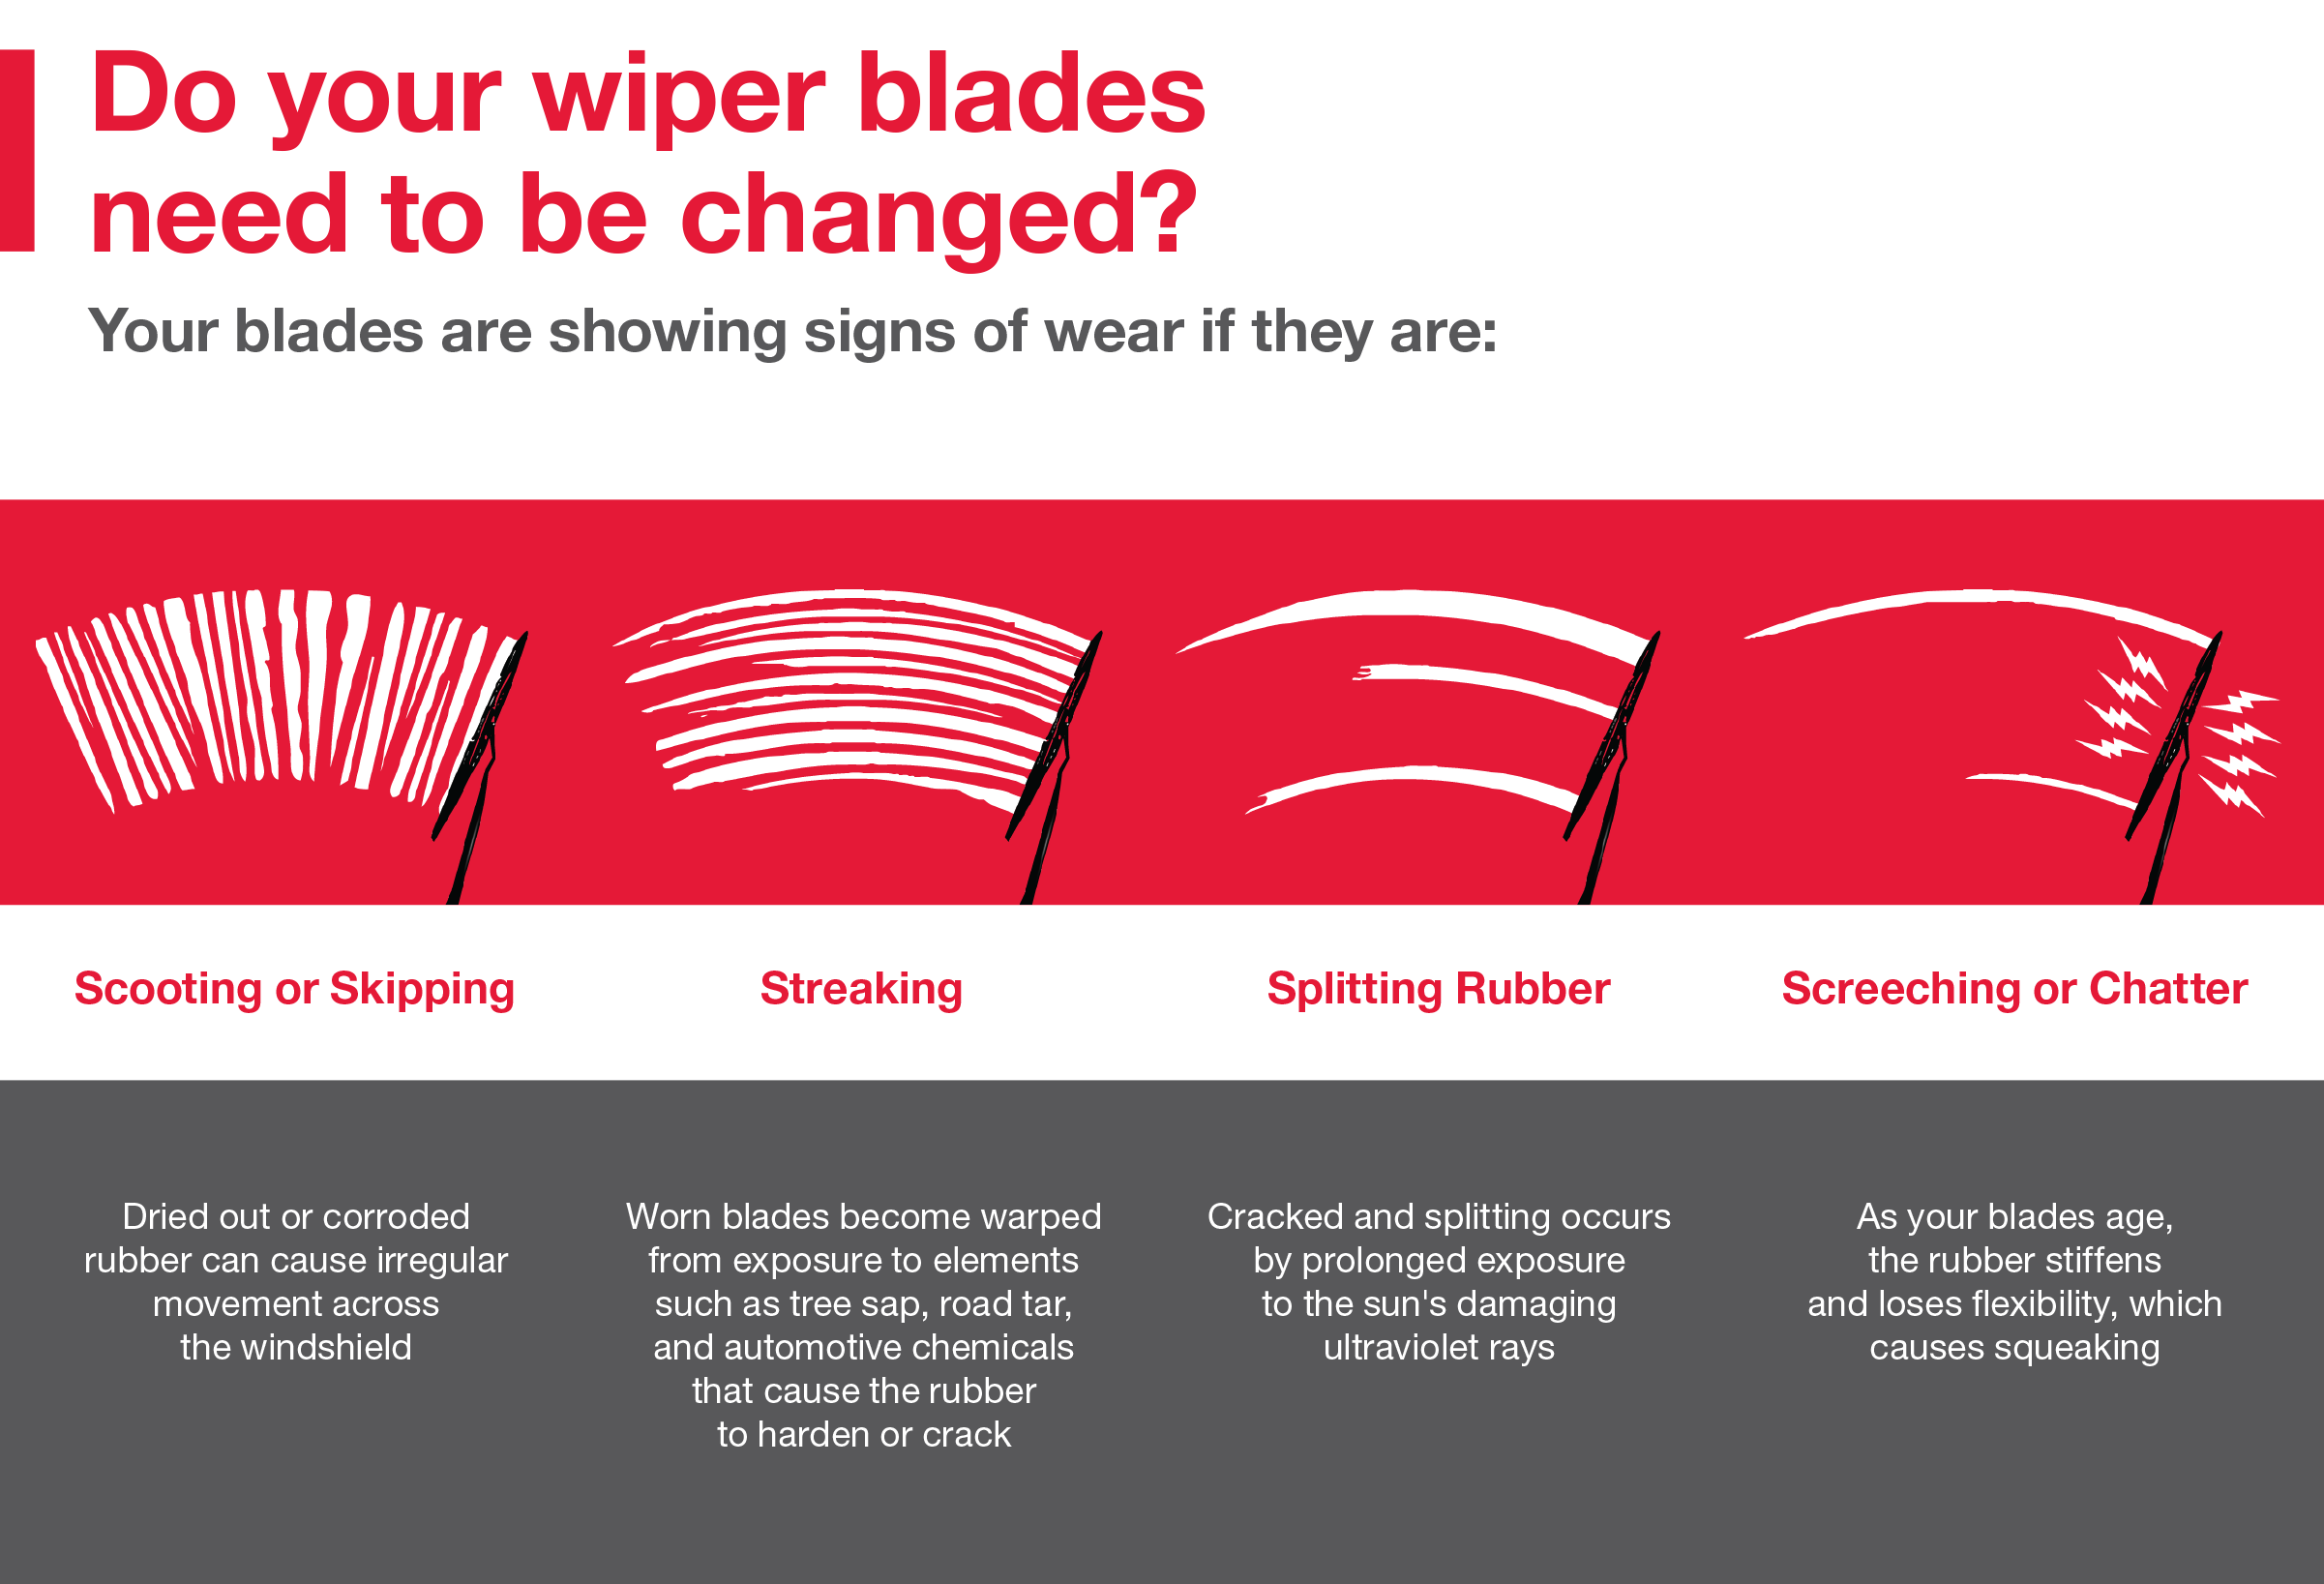 Do your wiper blades need to be changed? Call your local dealer for more info: (855) 592-7002